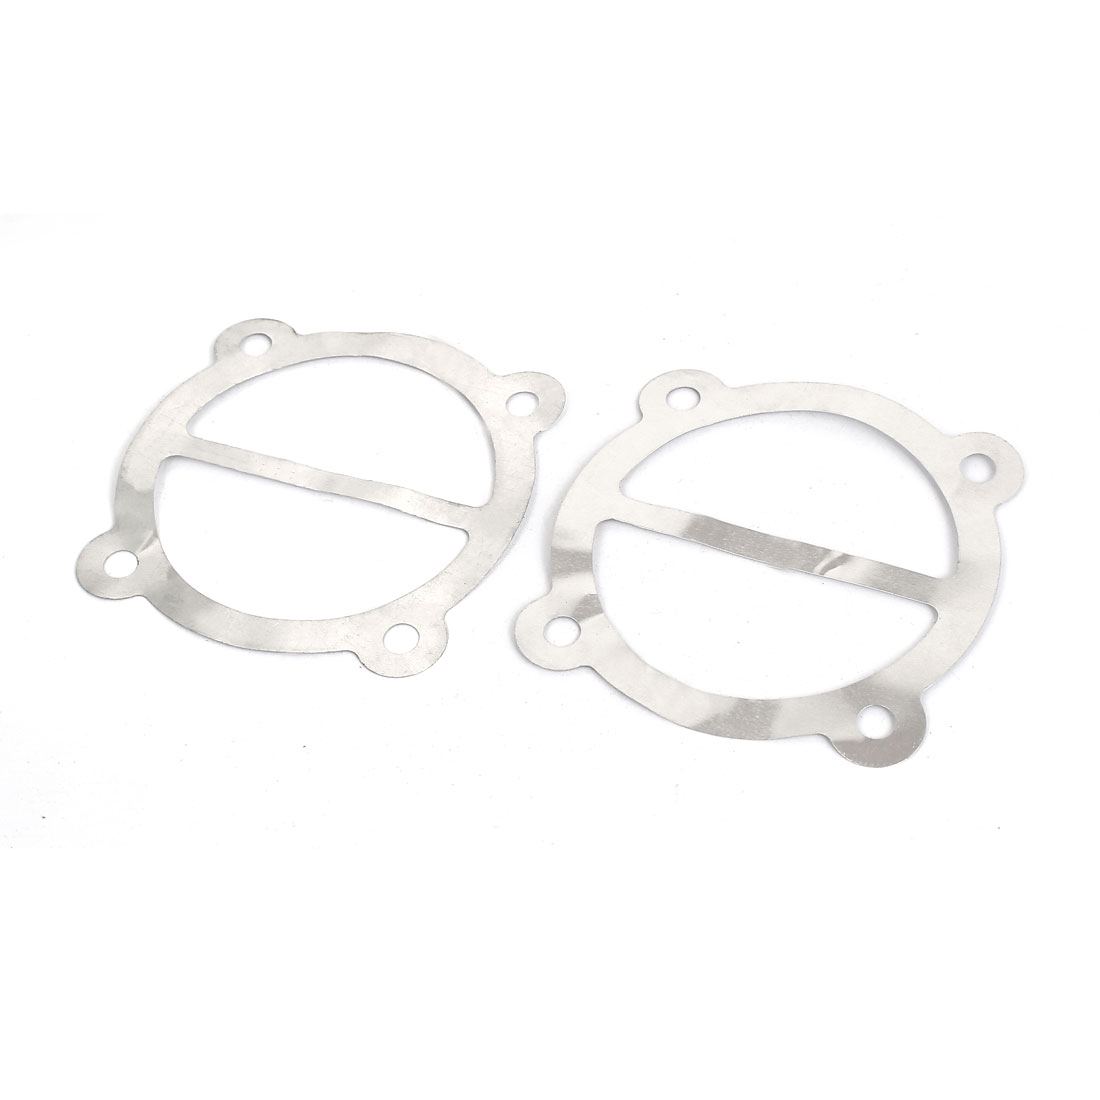 85mm OD Aluminum Air Compressor Engine Cylinder Head Gasket Silver Tone 2Pcs